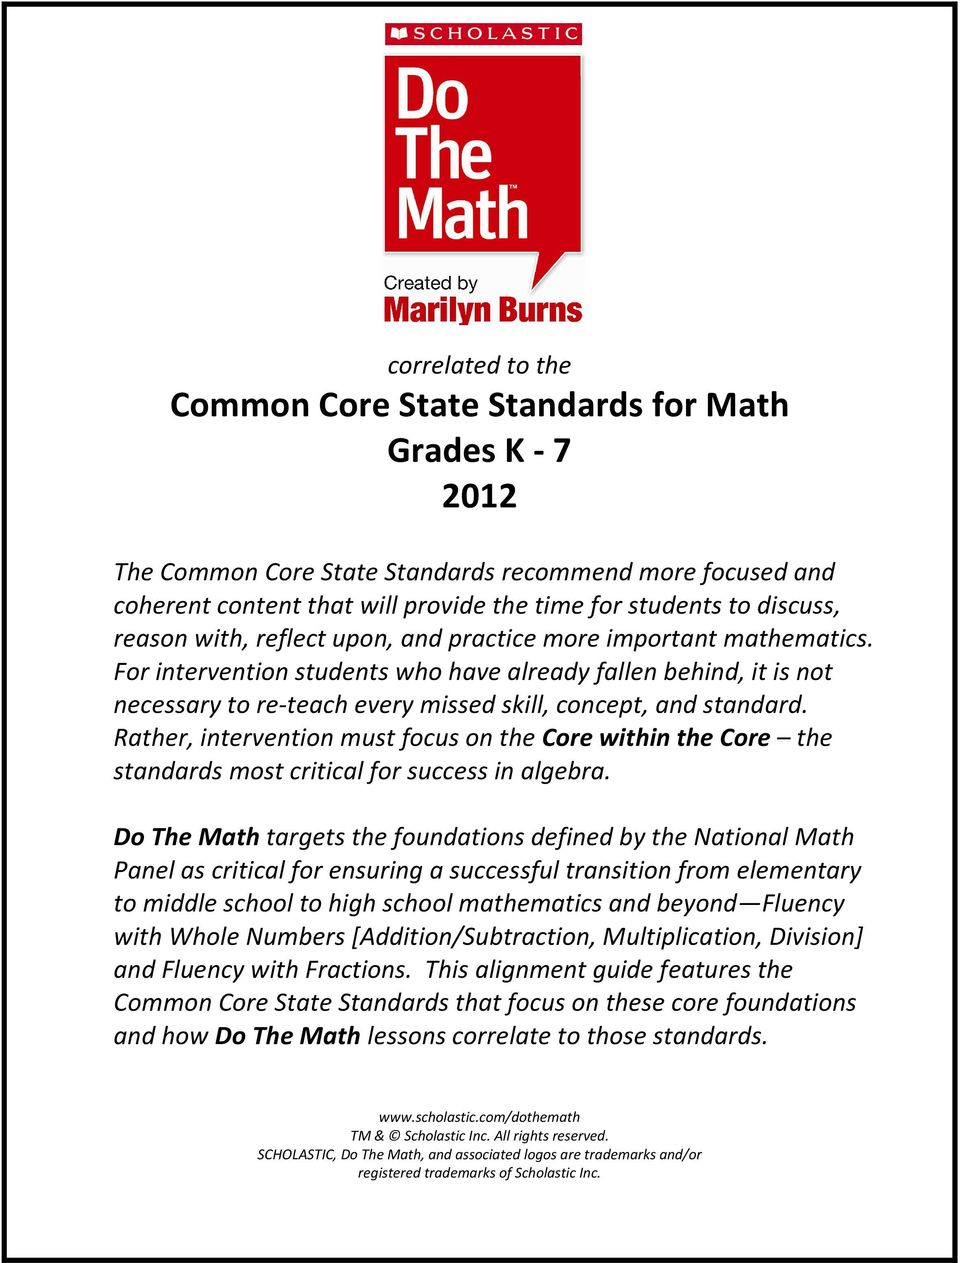 Rather, intervention must focus on the Core within the Core the standards most critical for success in algebra.